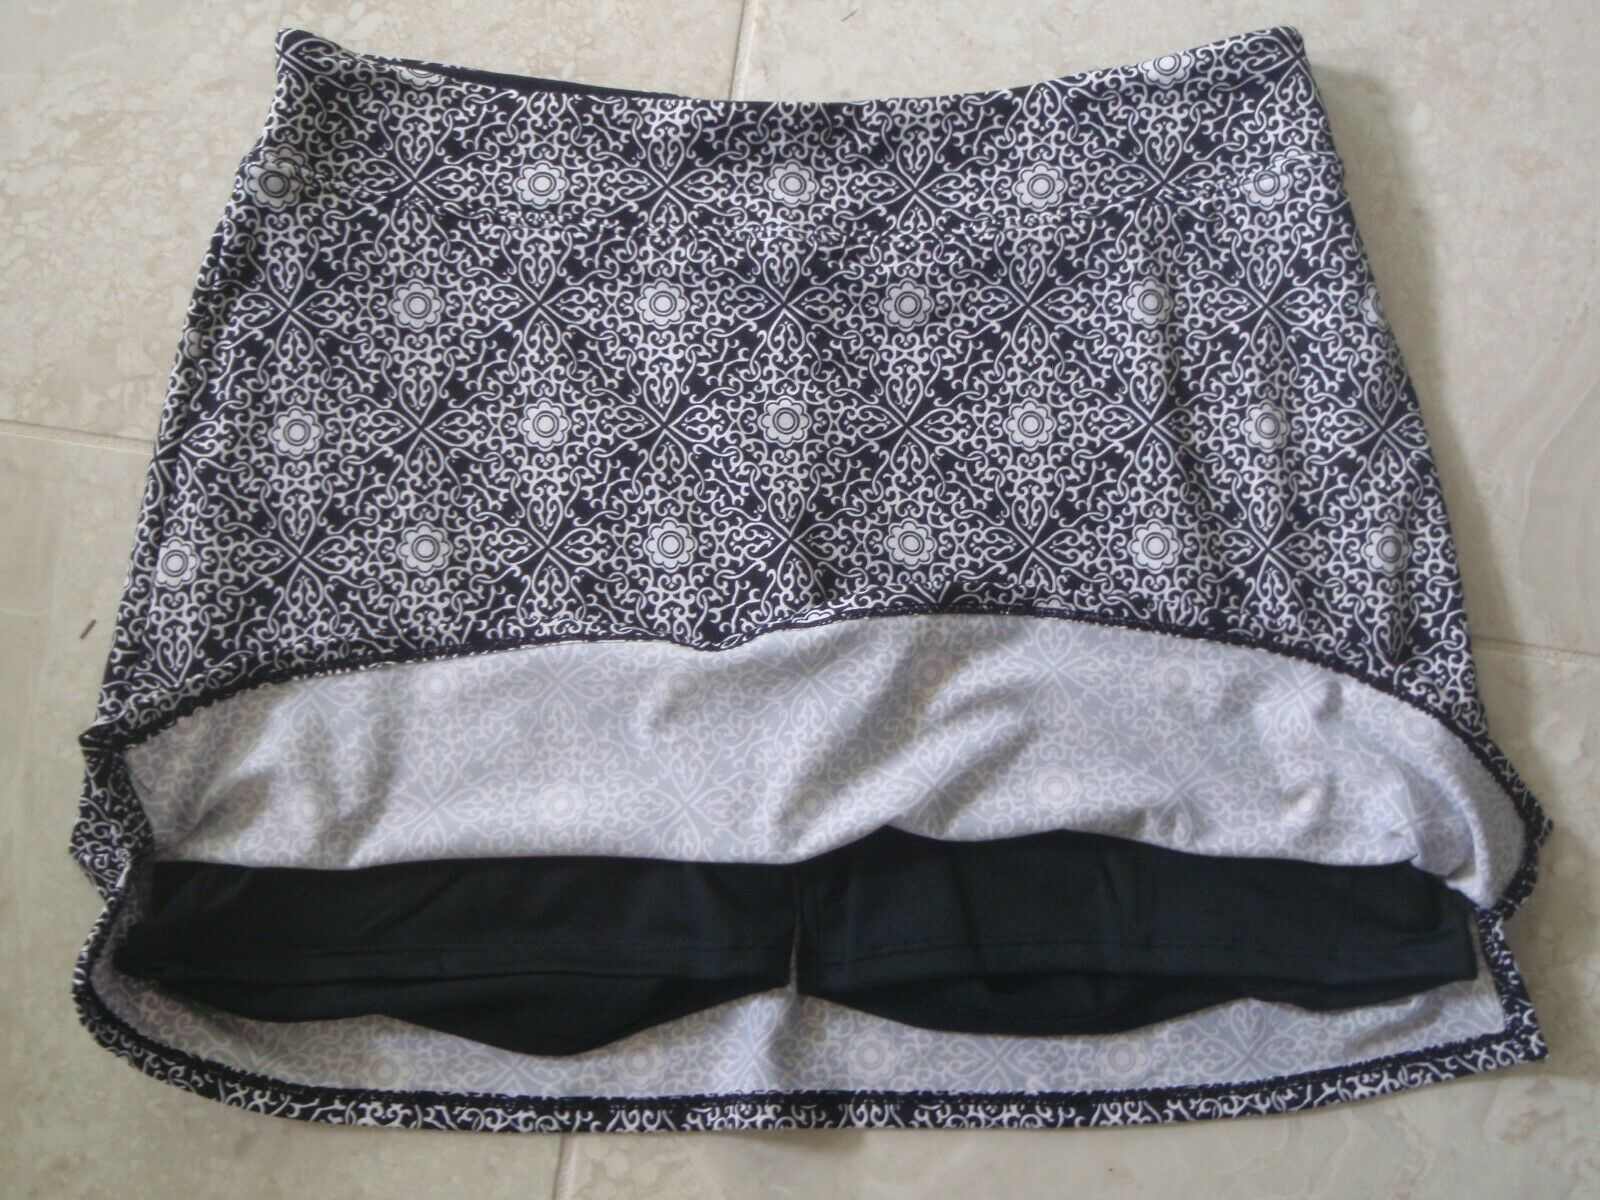 TRANQUILITY COLORADO CLOTHING YOGA GOLF SKORT SKIRT NEW MAGNIFICENT BLACK MEDIUM